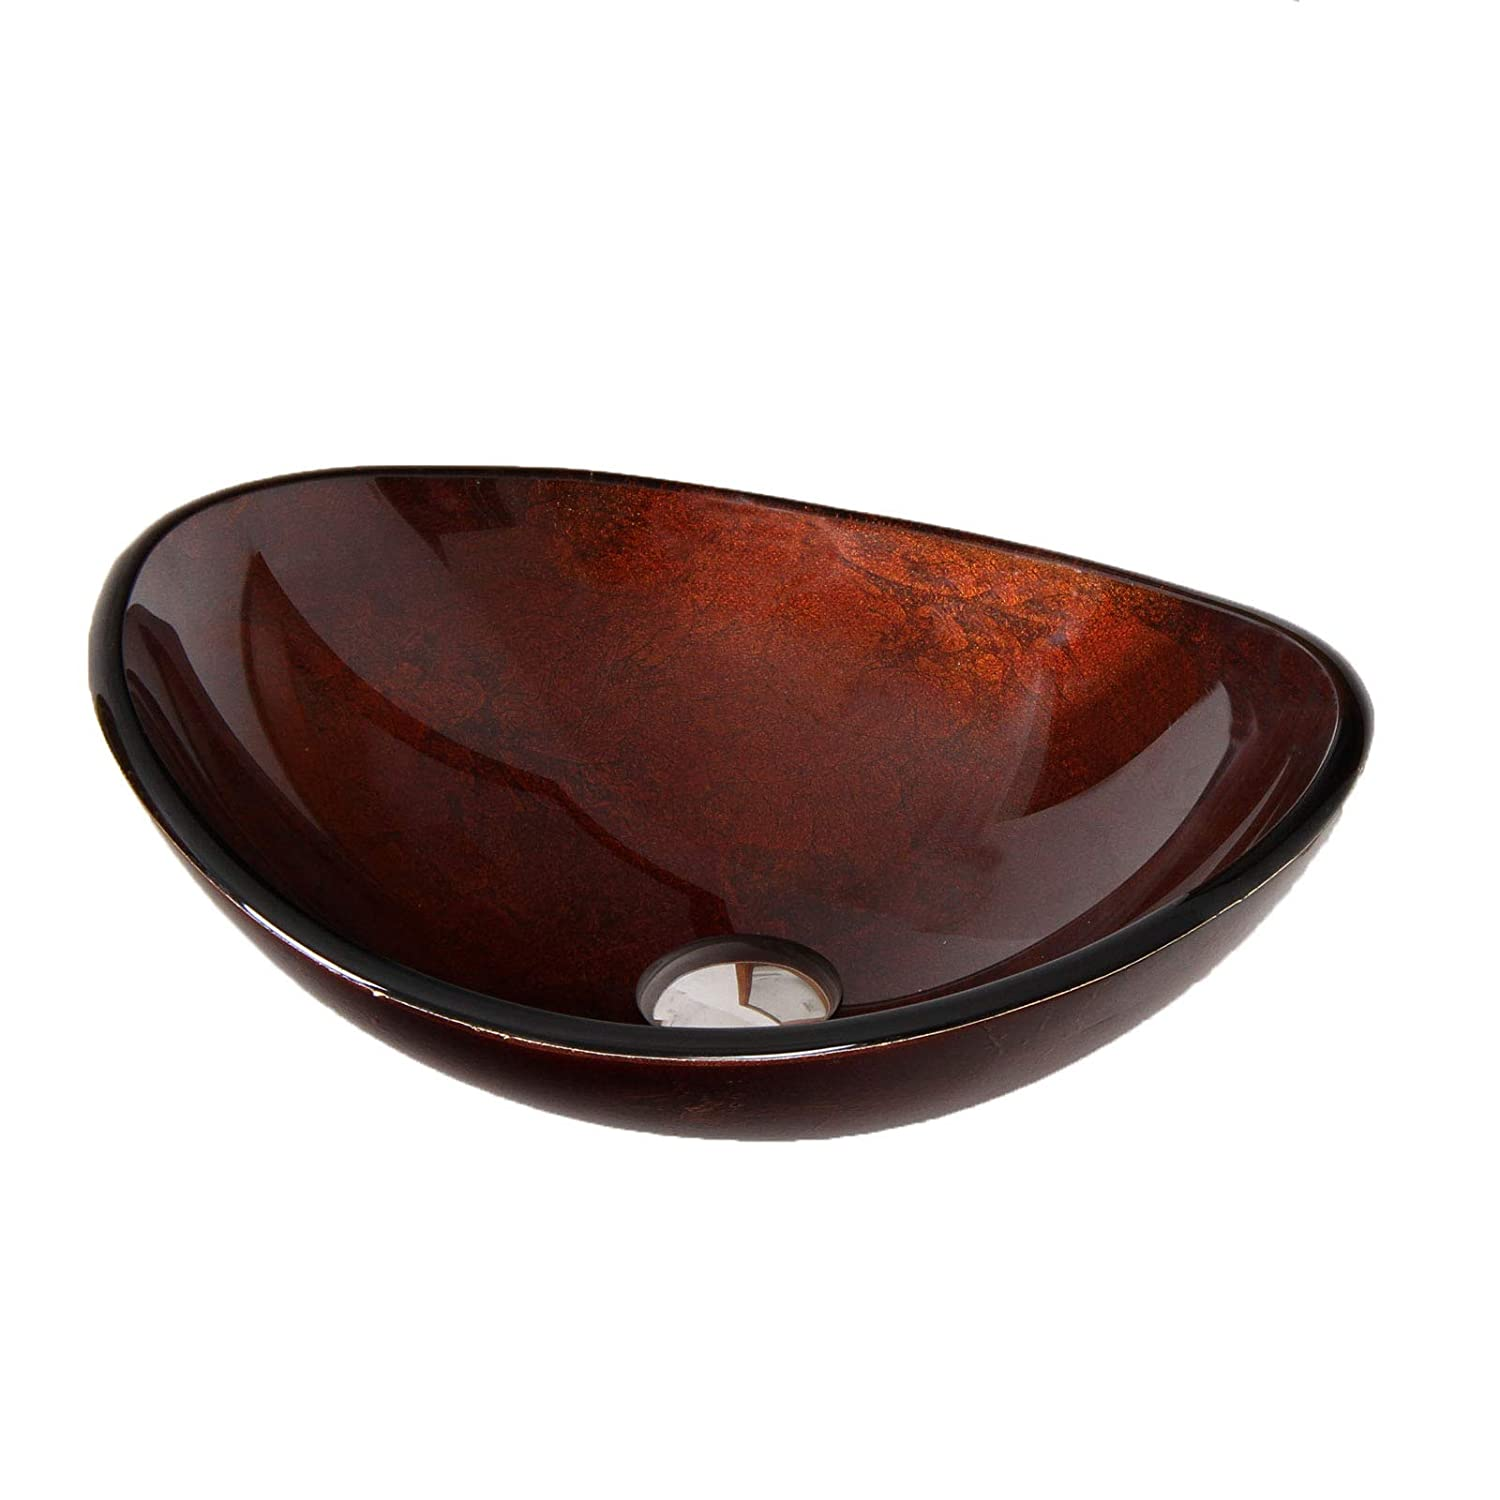 Hand Painted Foil Boat Shaped Oval Bowl Bottom Vessel Bathroom Sink Sink Finish Artistic Bronze